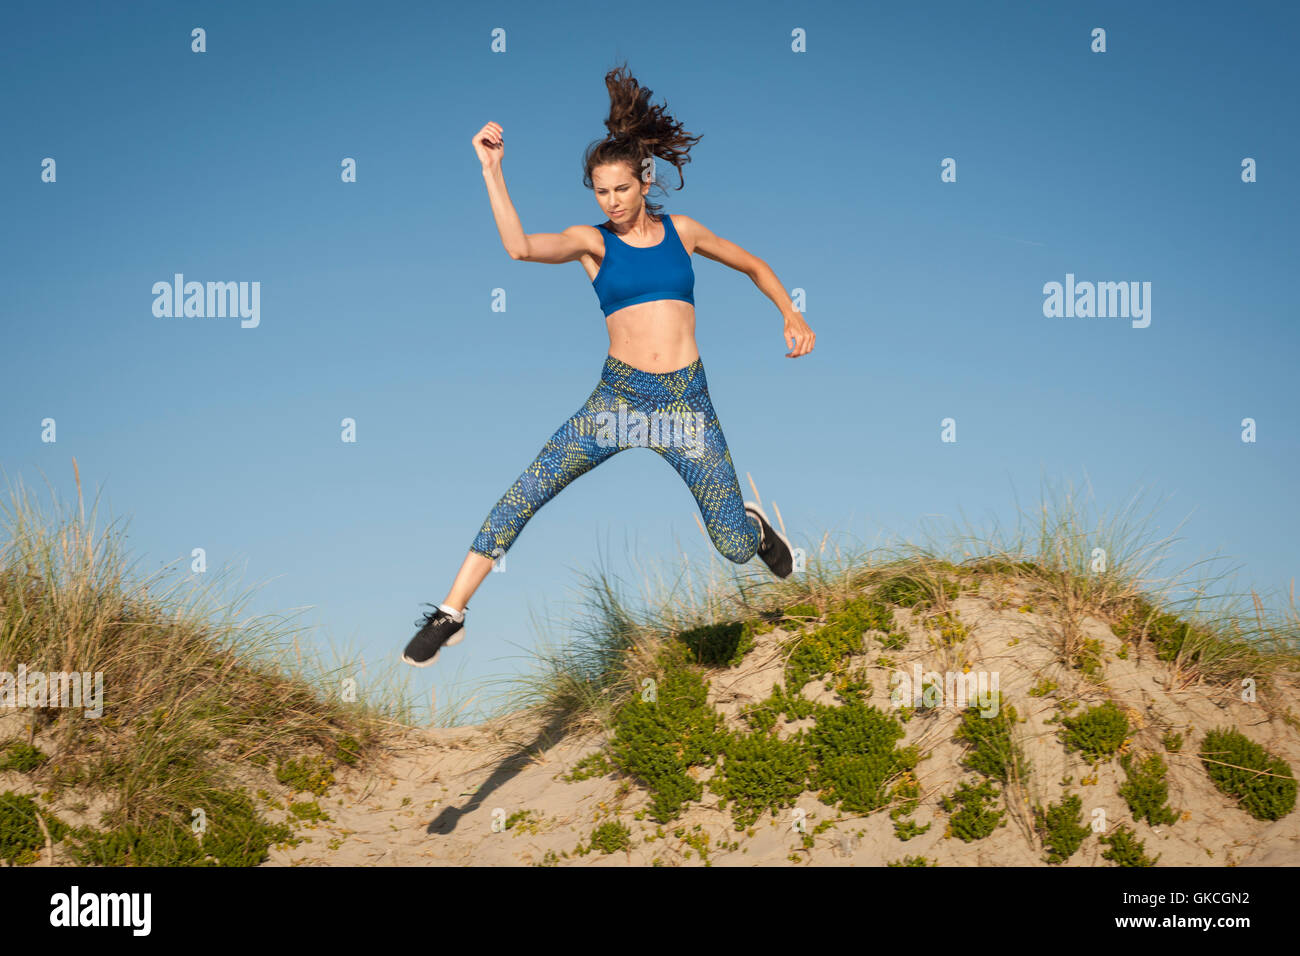 woman exercising, running and jumping in sand dunes - Stock Image